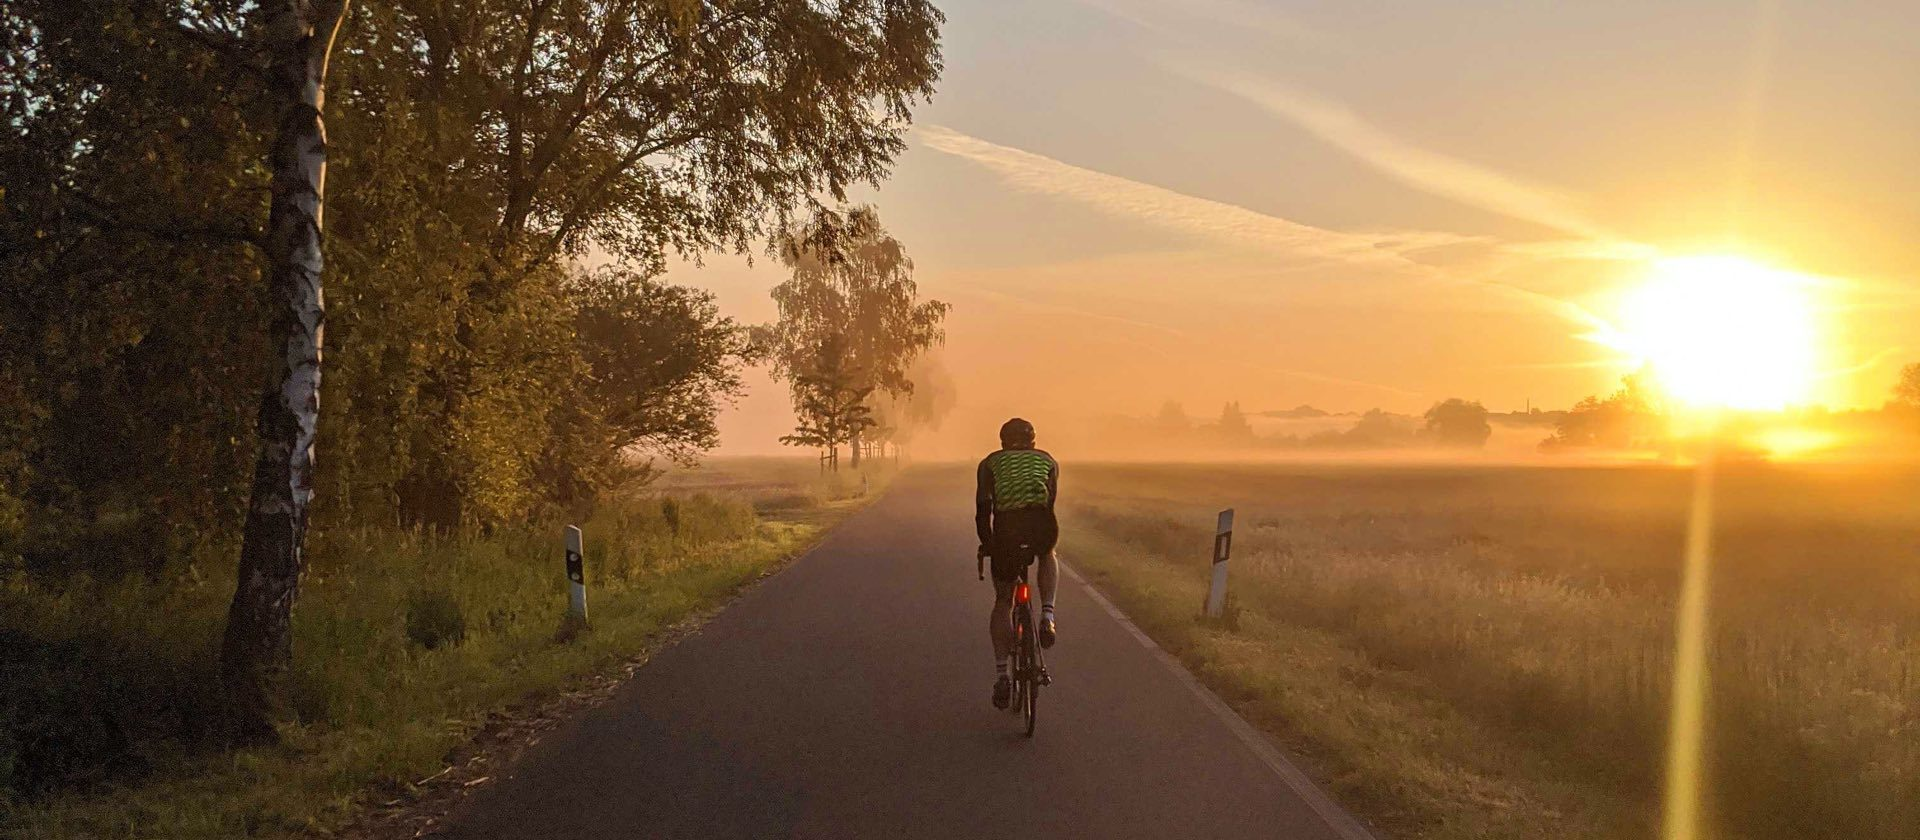 Frank Bültge rides on his bike into the sunset